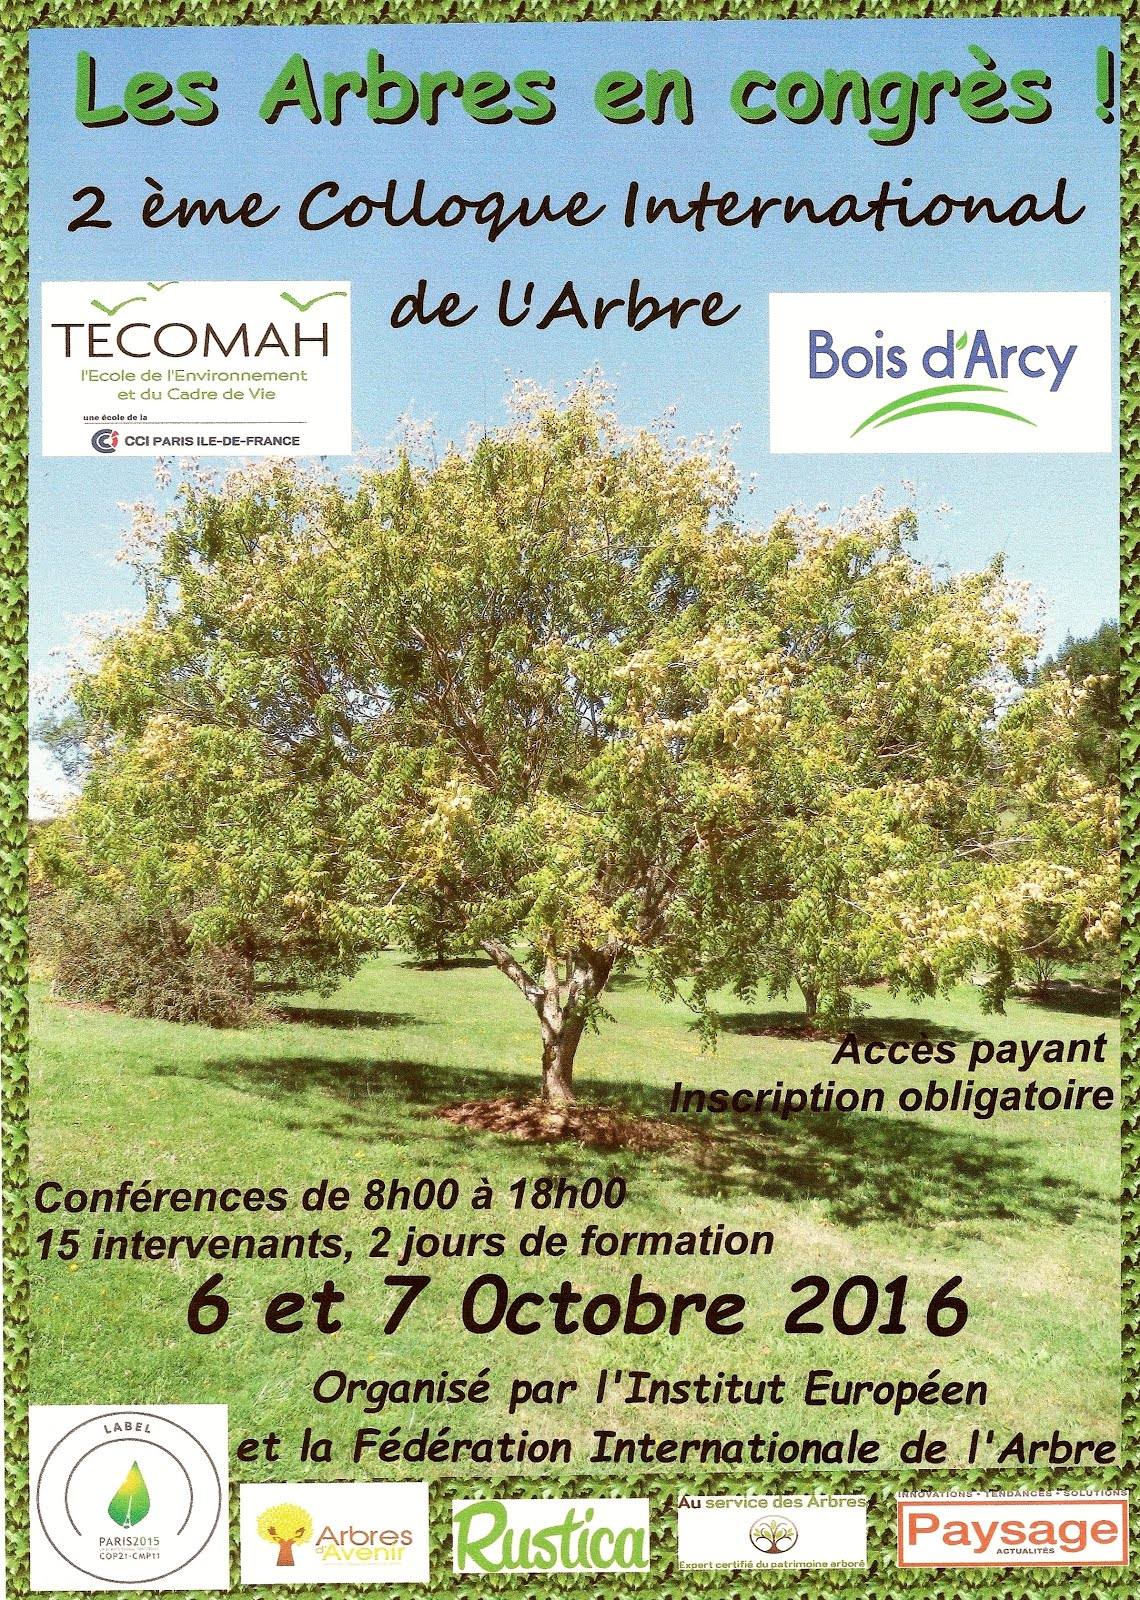 2ème Colloque International de l'Arbre